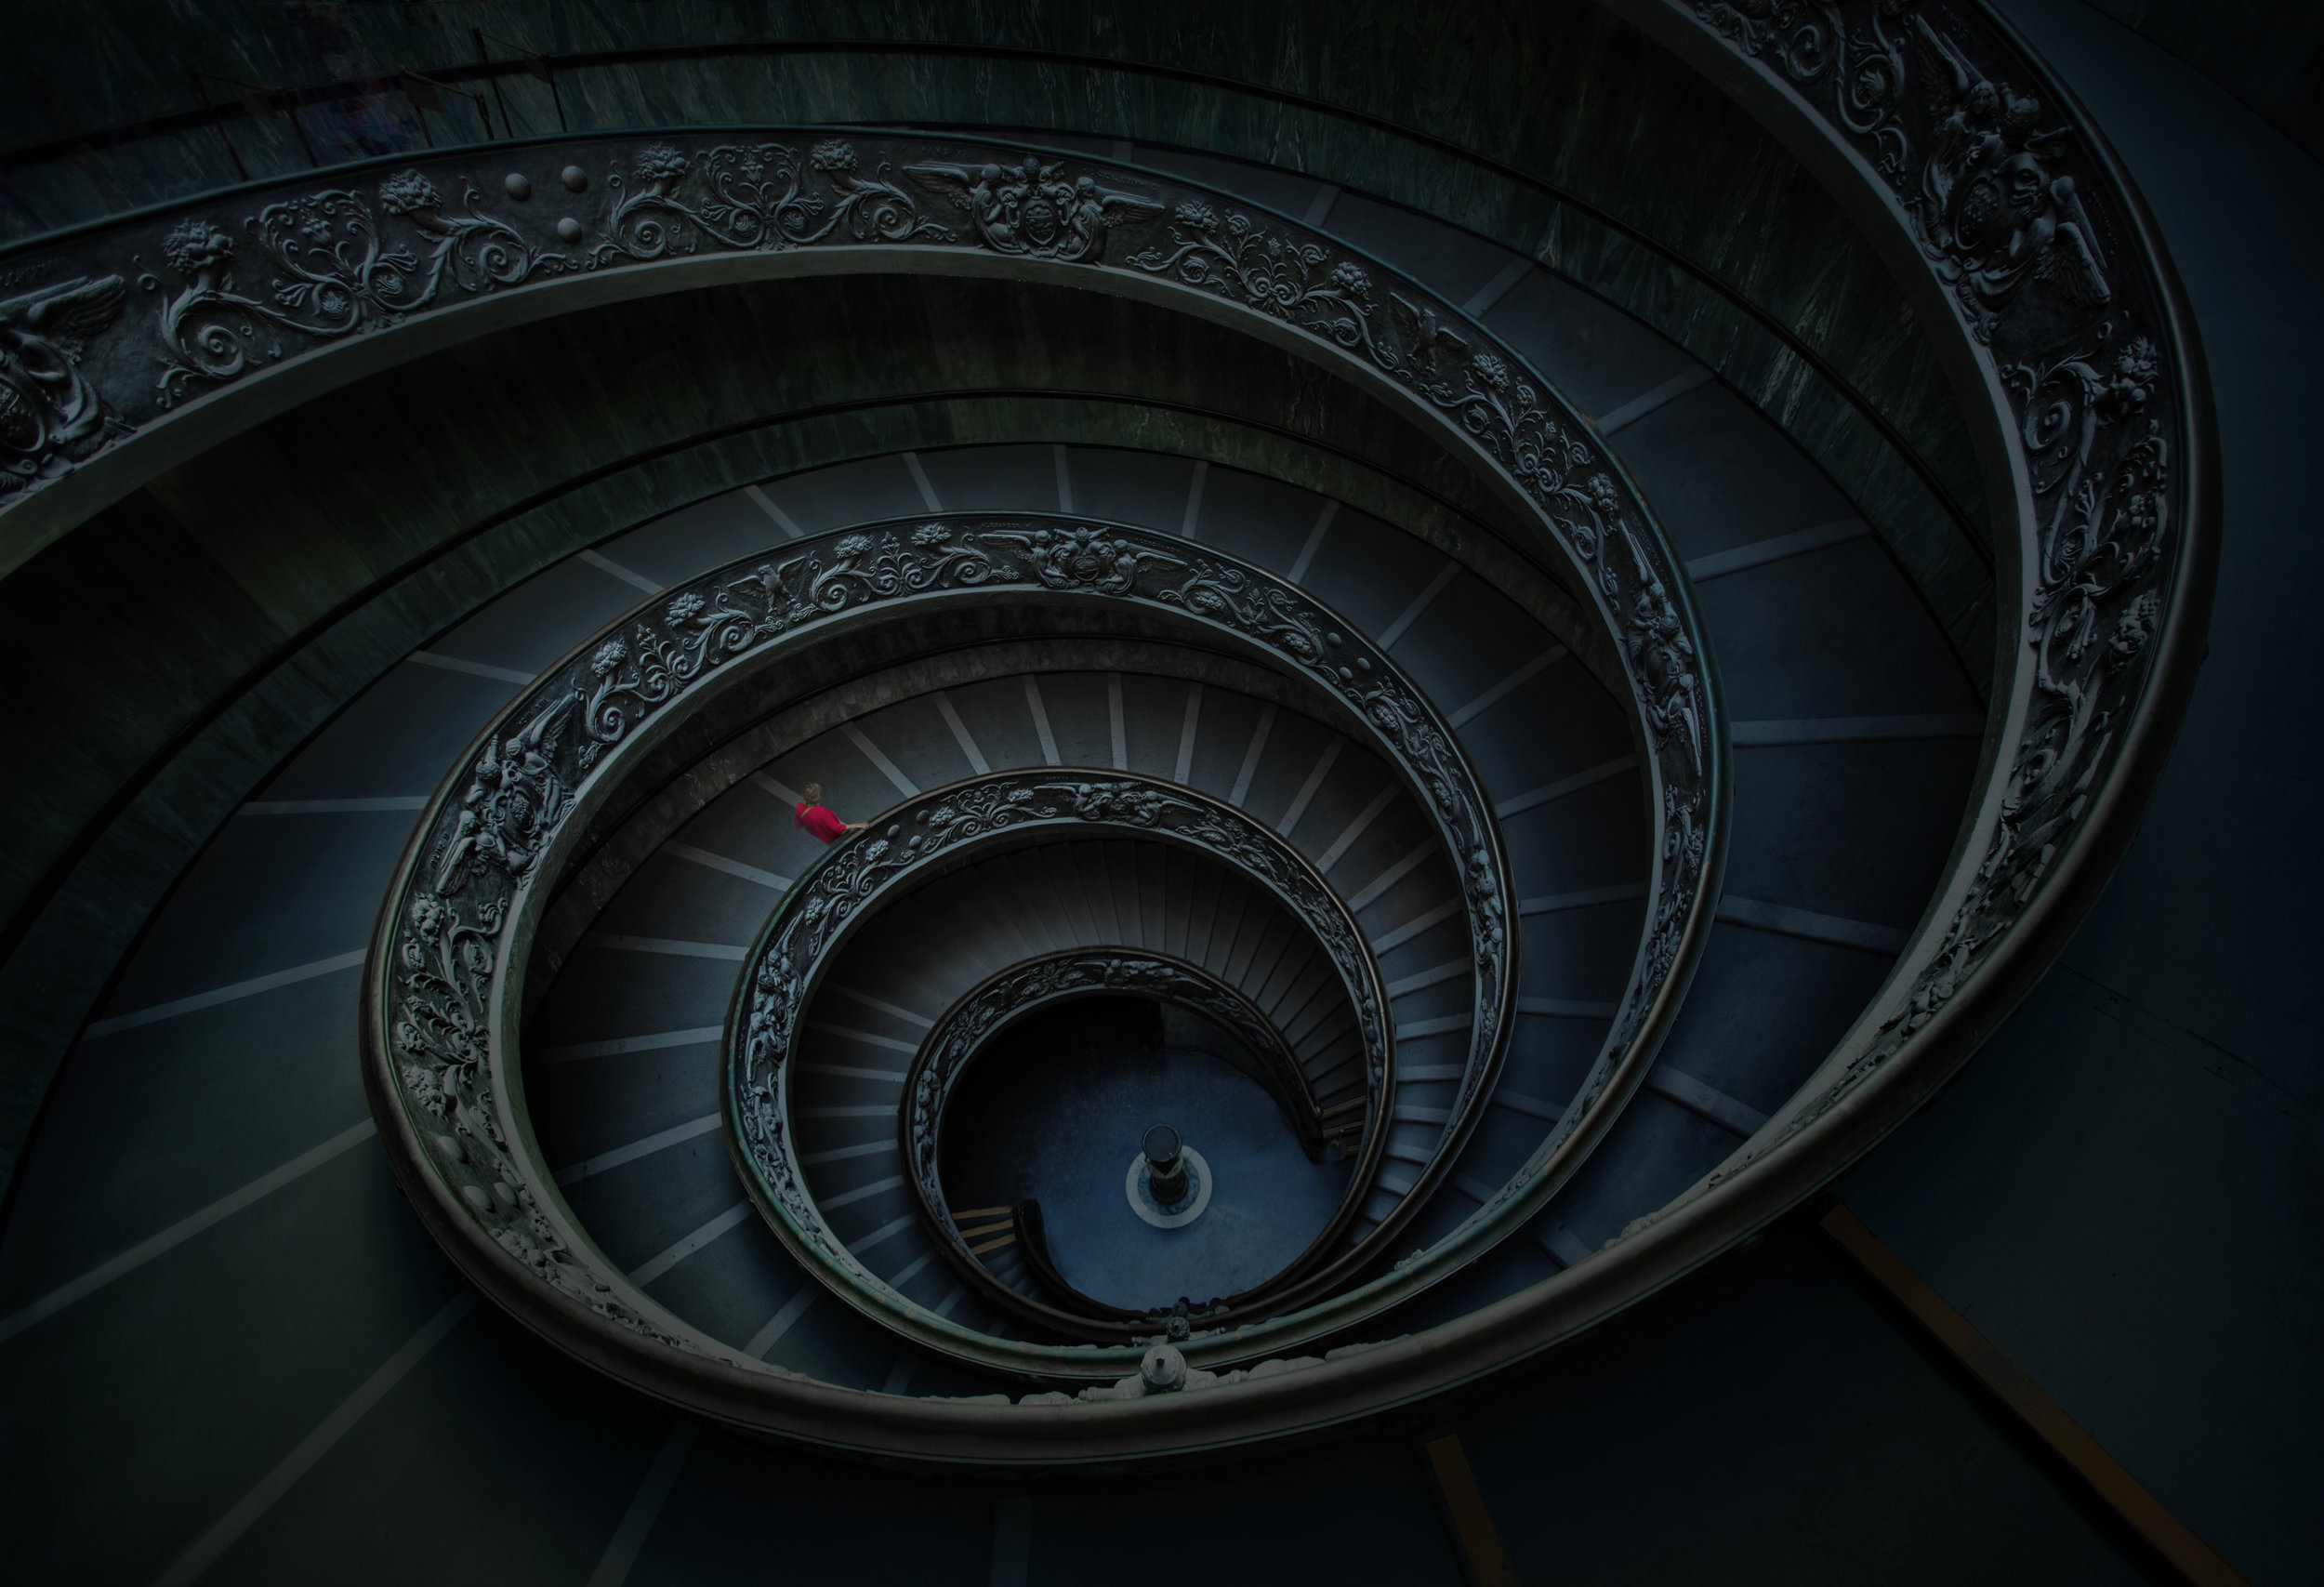 vatican stairs part 2 with people.jpg